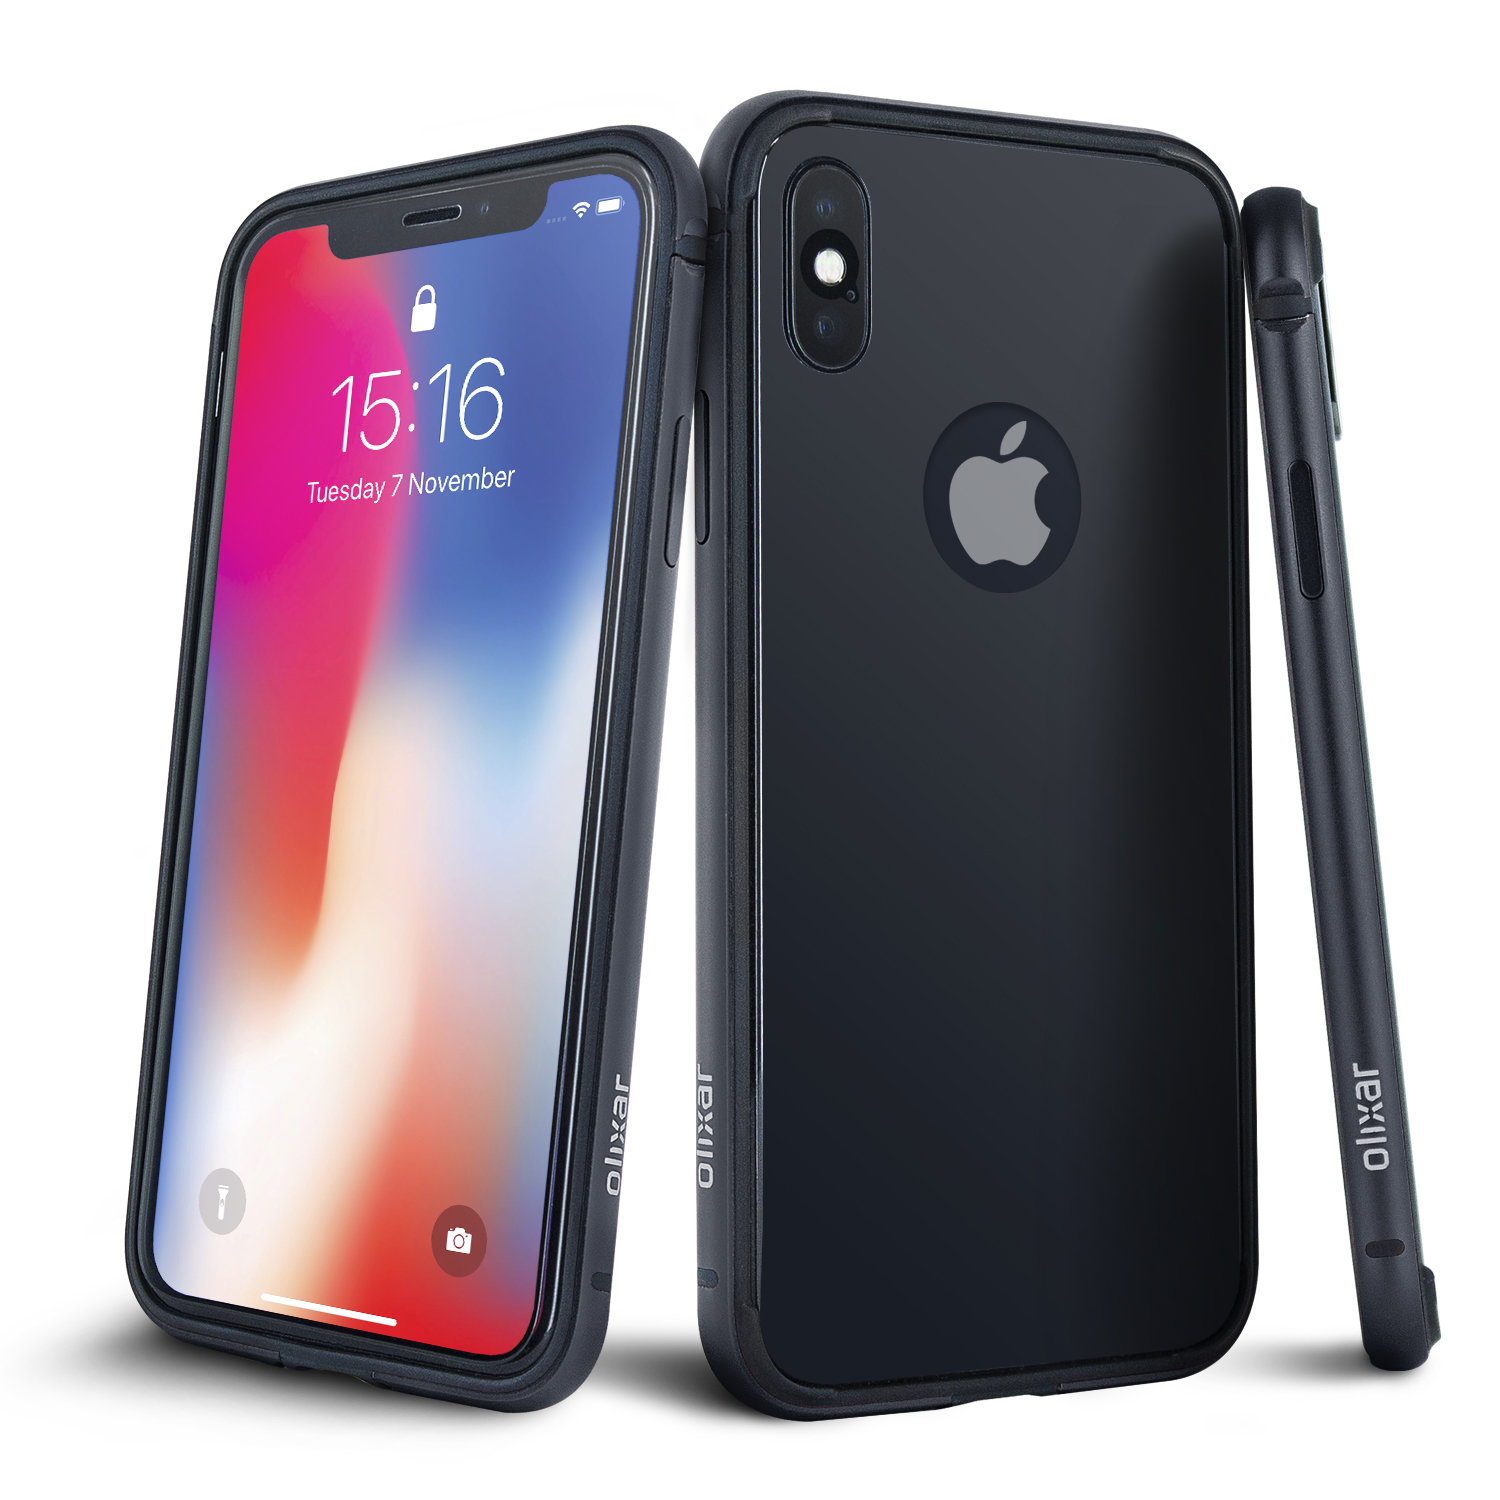 Olixar Helix iPhone X Case 360 Complete Protection System - Space Grey